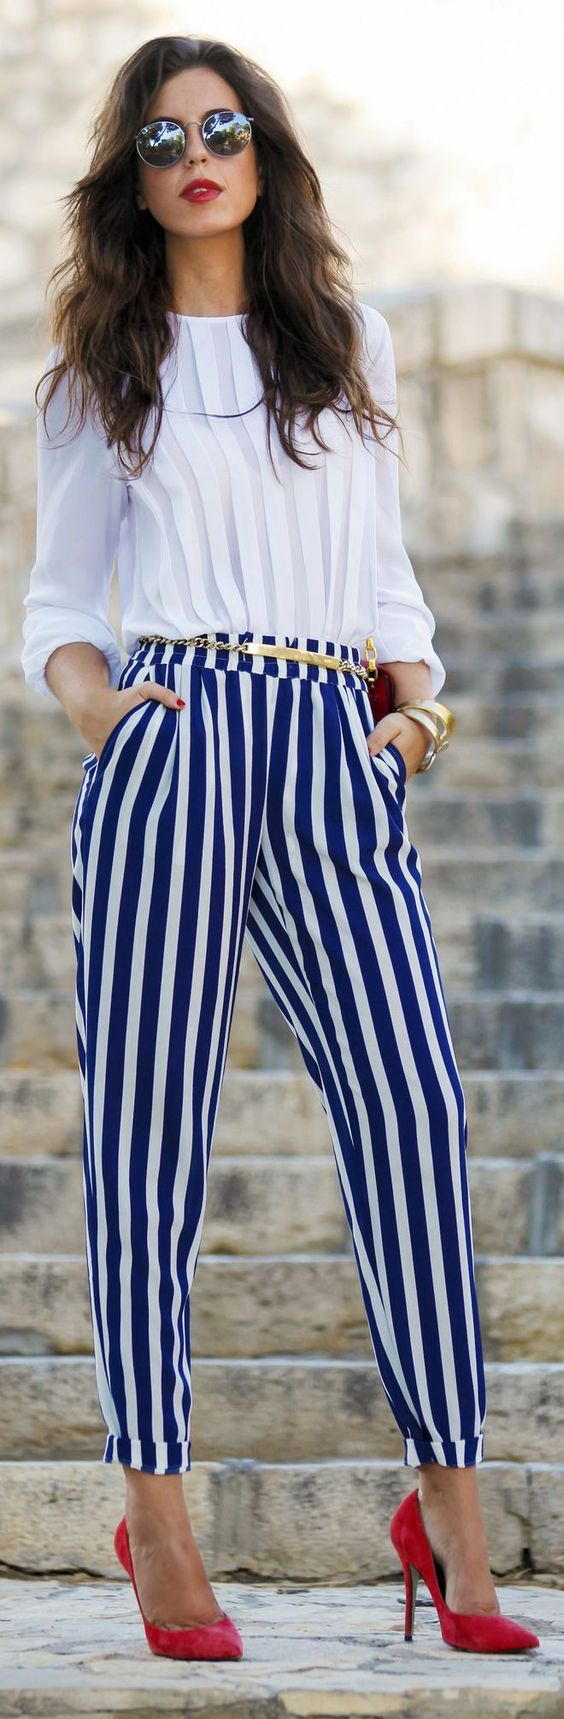 5 ways to wear striped pants and looking like like wearing pajamas